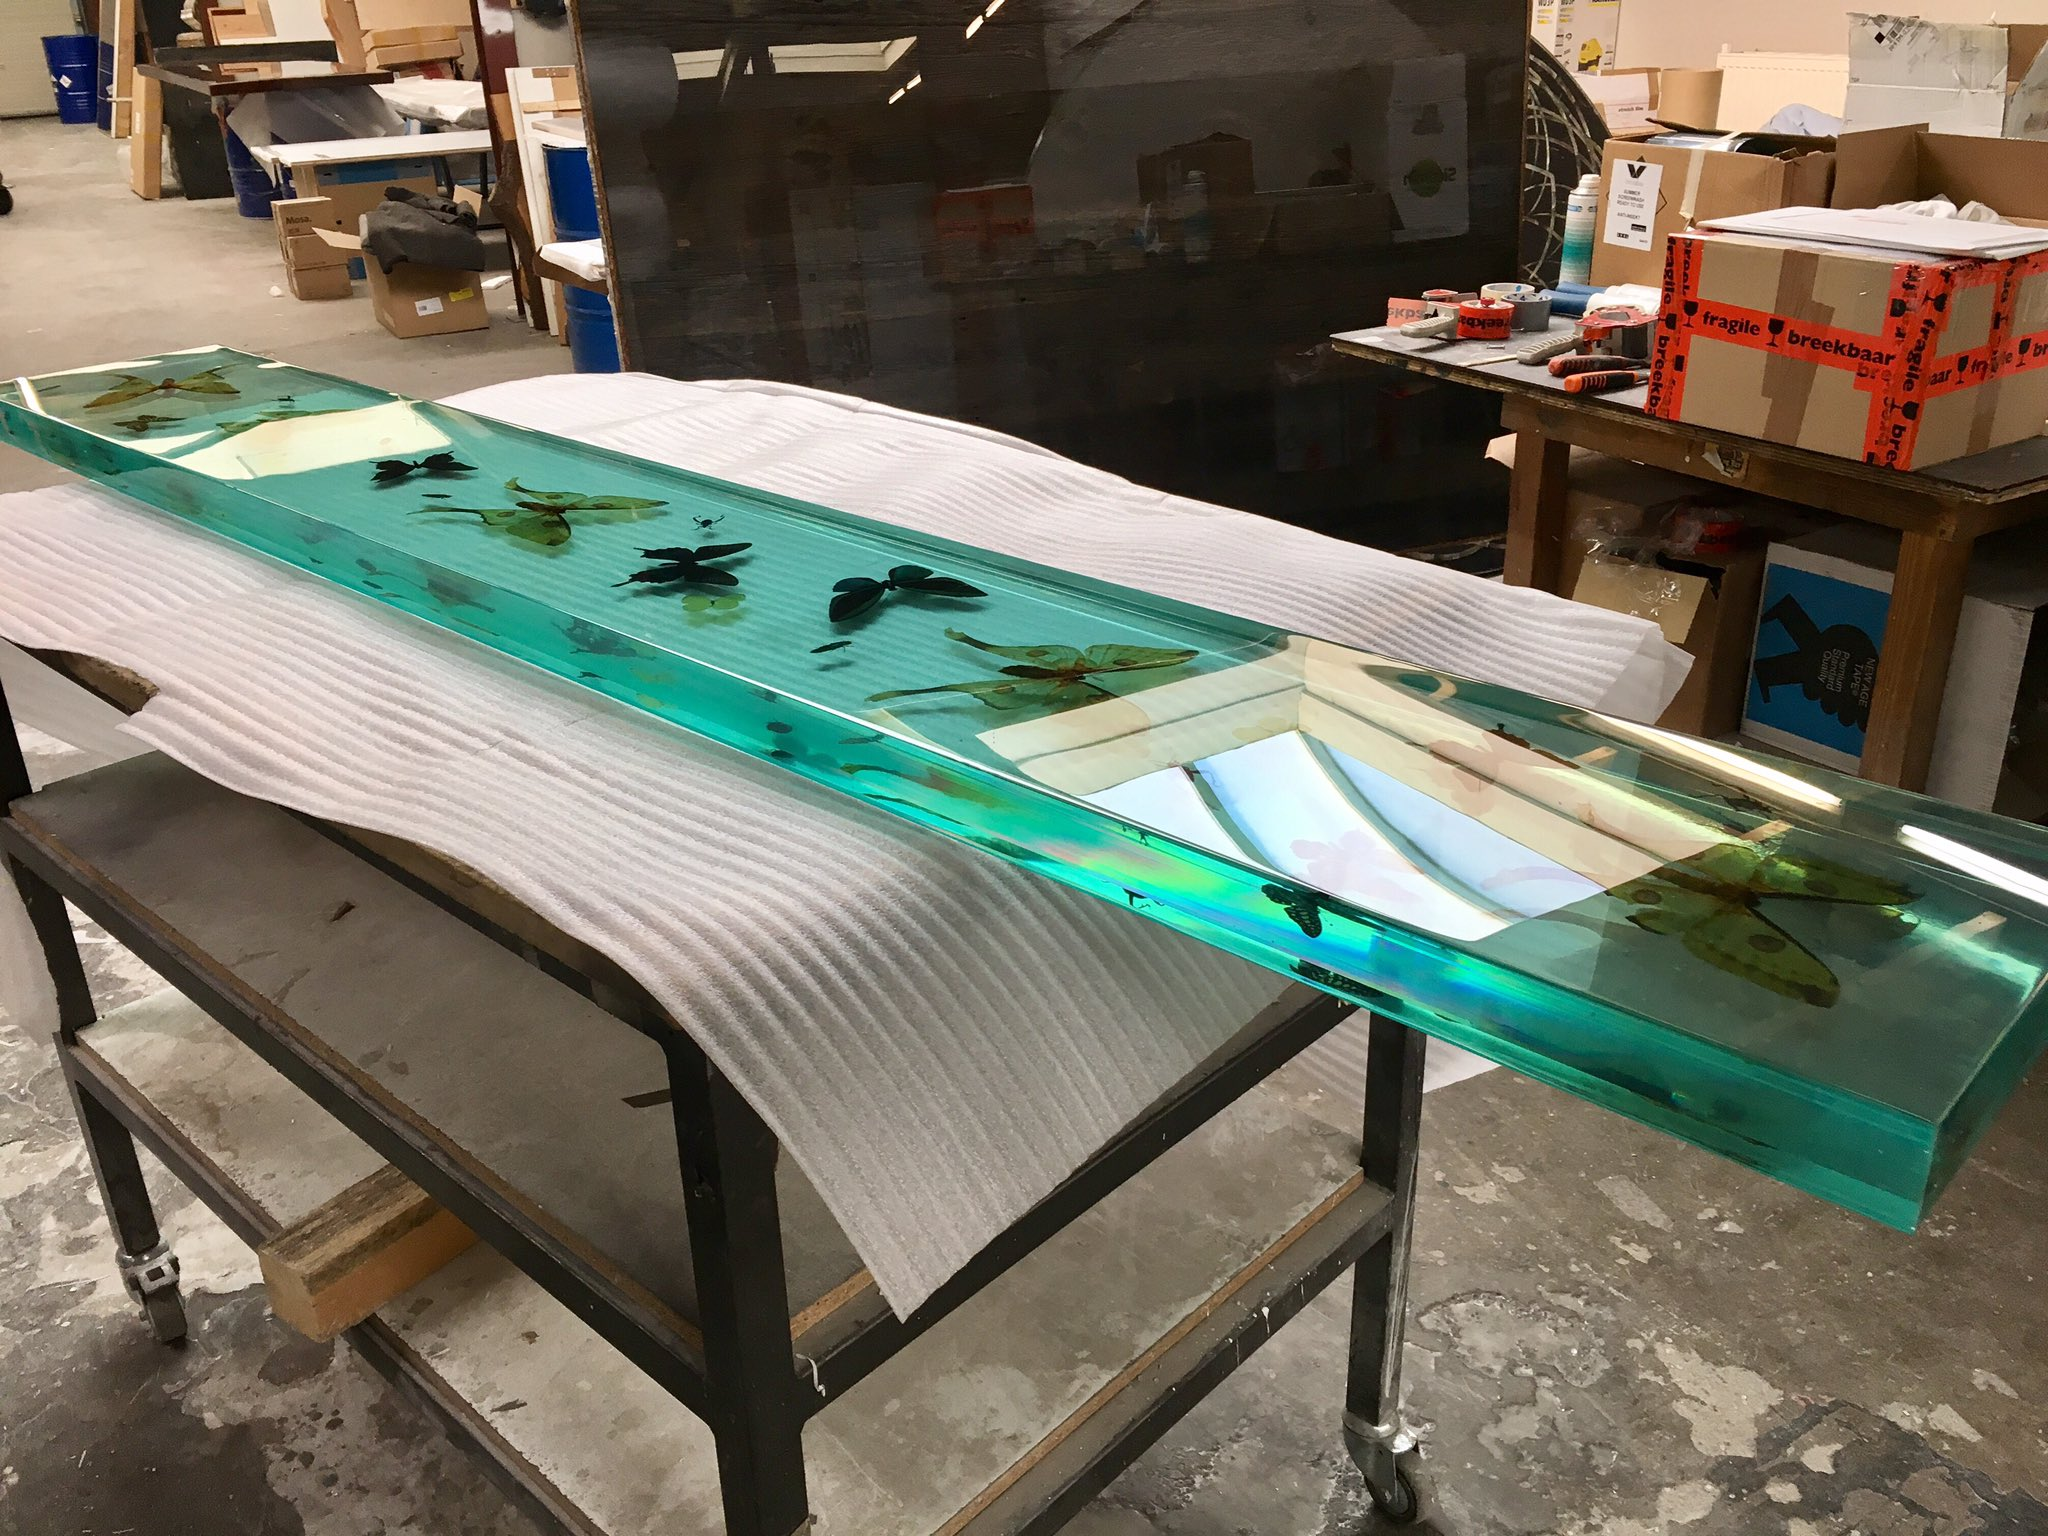 Epoxy Resin Ideas : Michelle wolterink on twitter quot overview resin butterfly